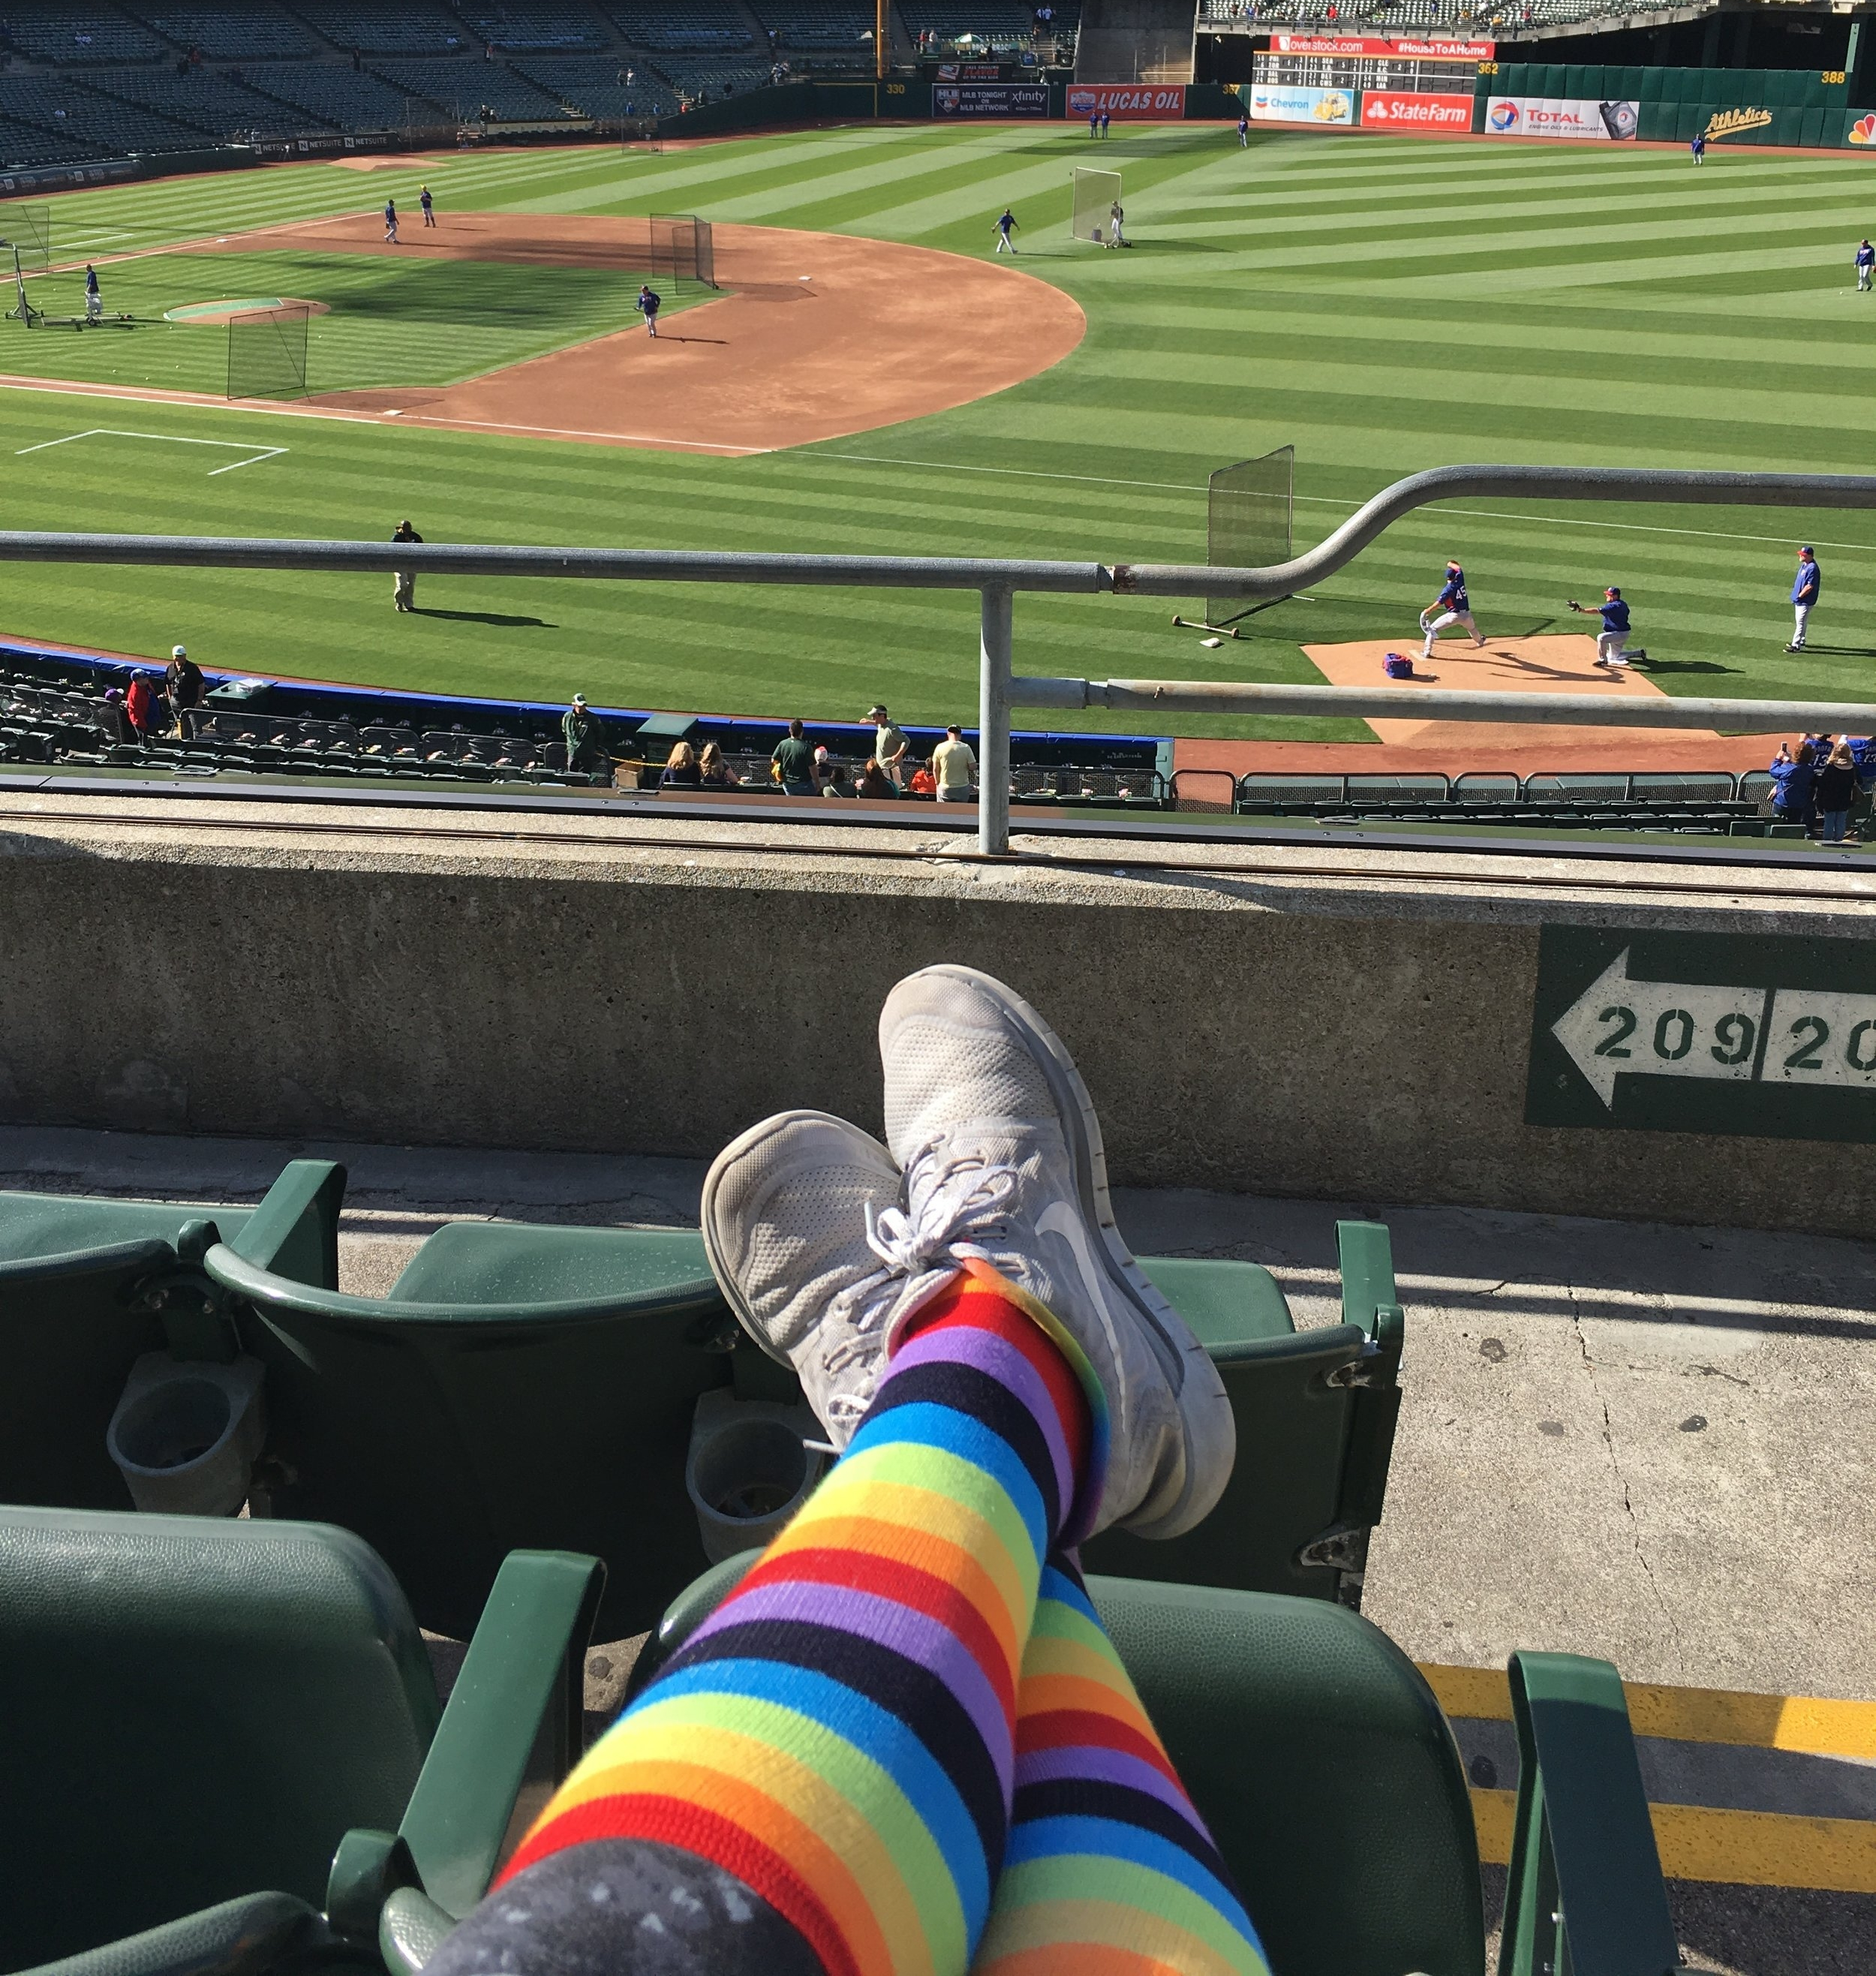 Oakland A's pride night (after Orlando)